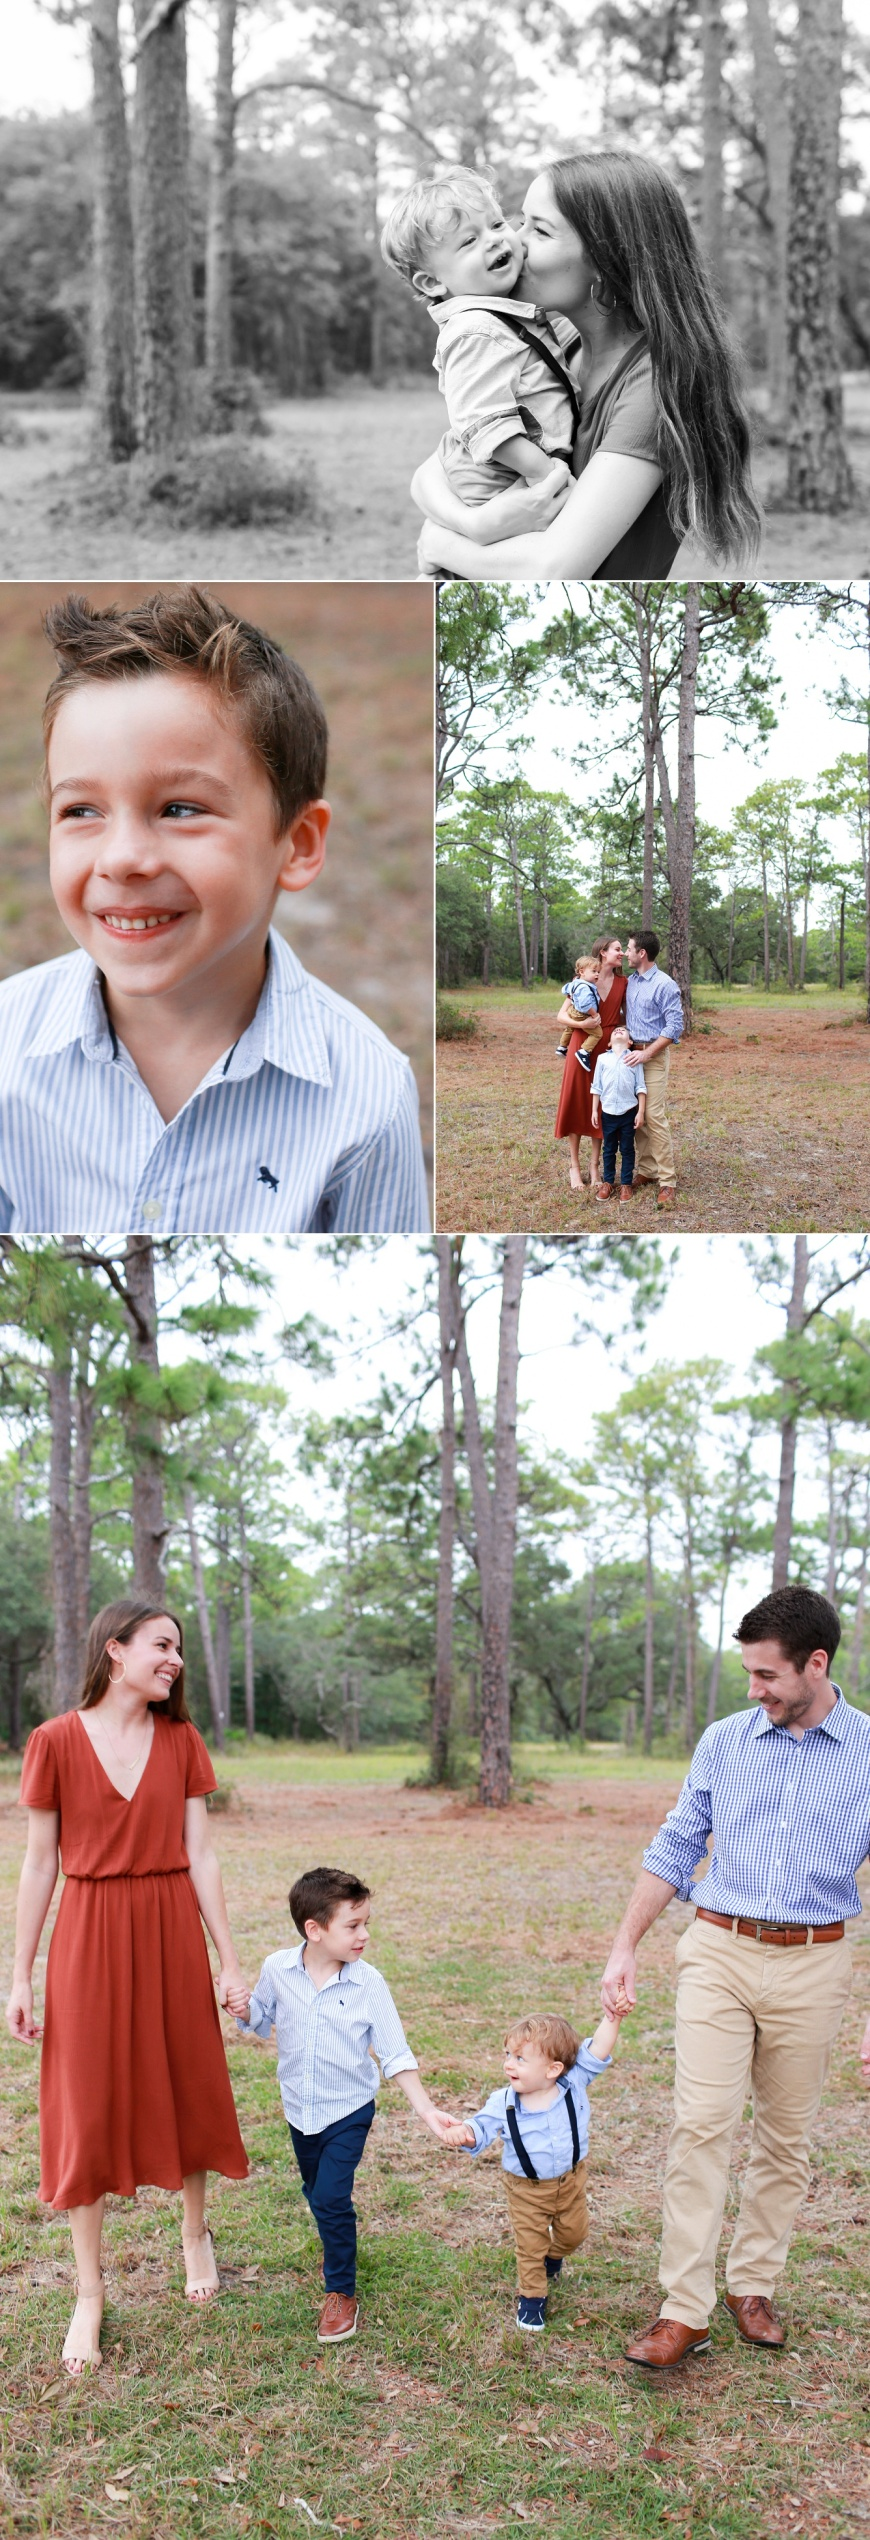 White-Point-Park-Niceville-Florida-Family-Photographer_1015.jpg